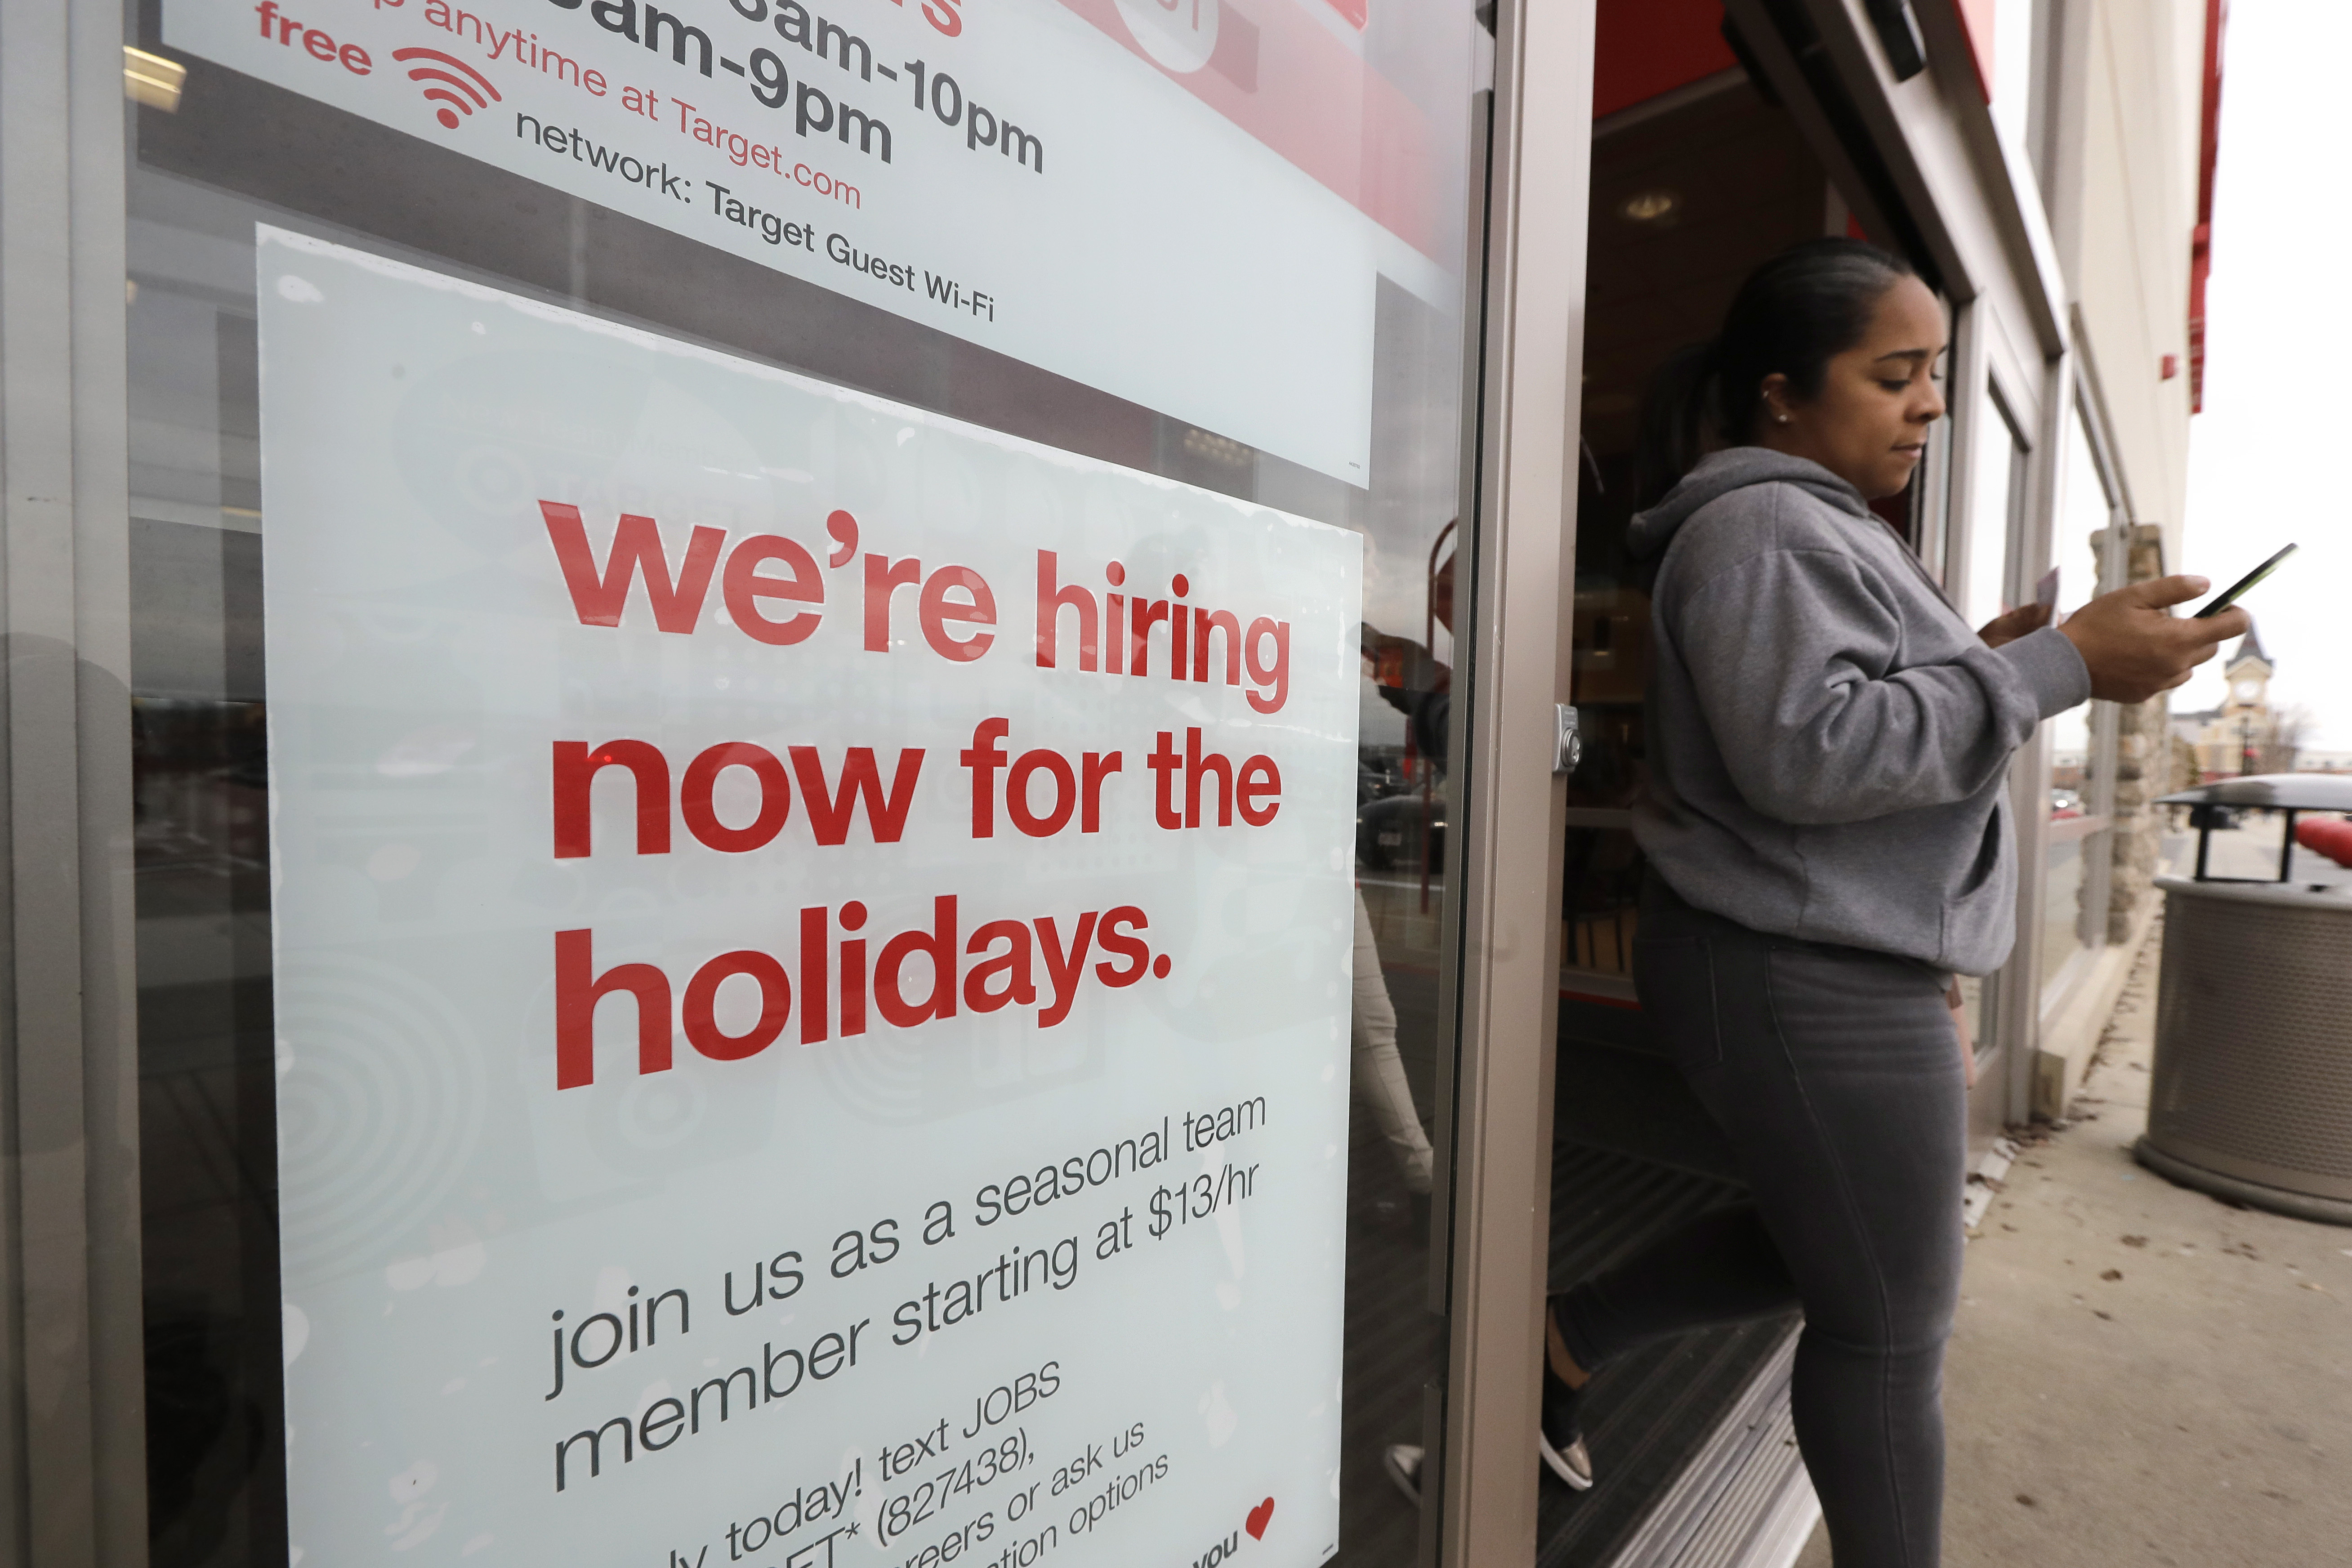 Retailers Offering Higher Pay More Perks To Attract Holiday Workers The Washington Post